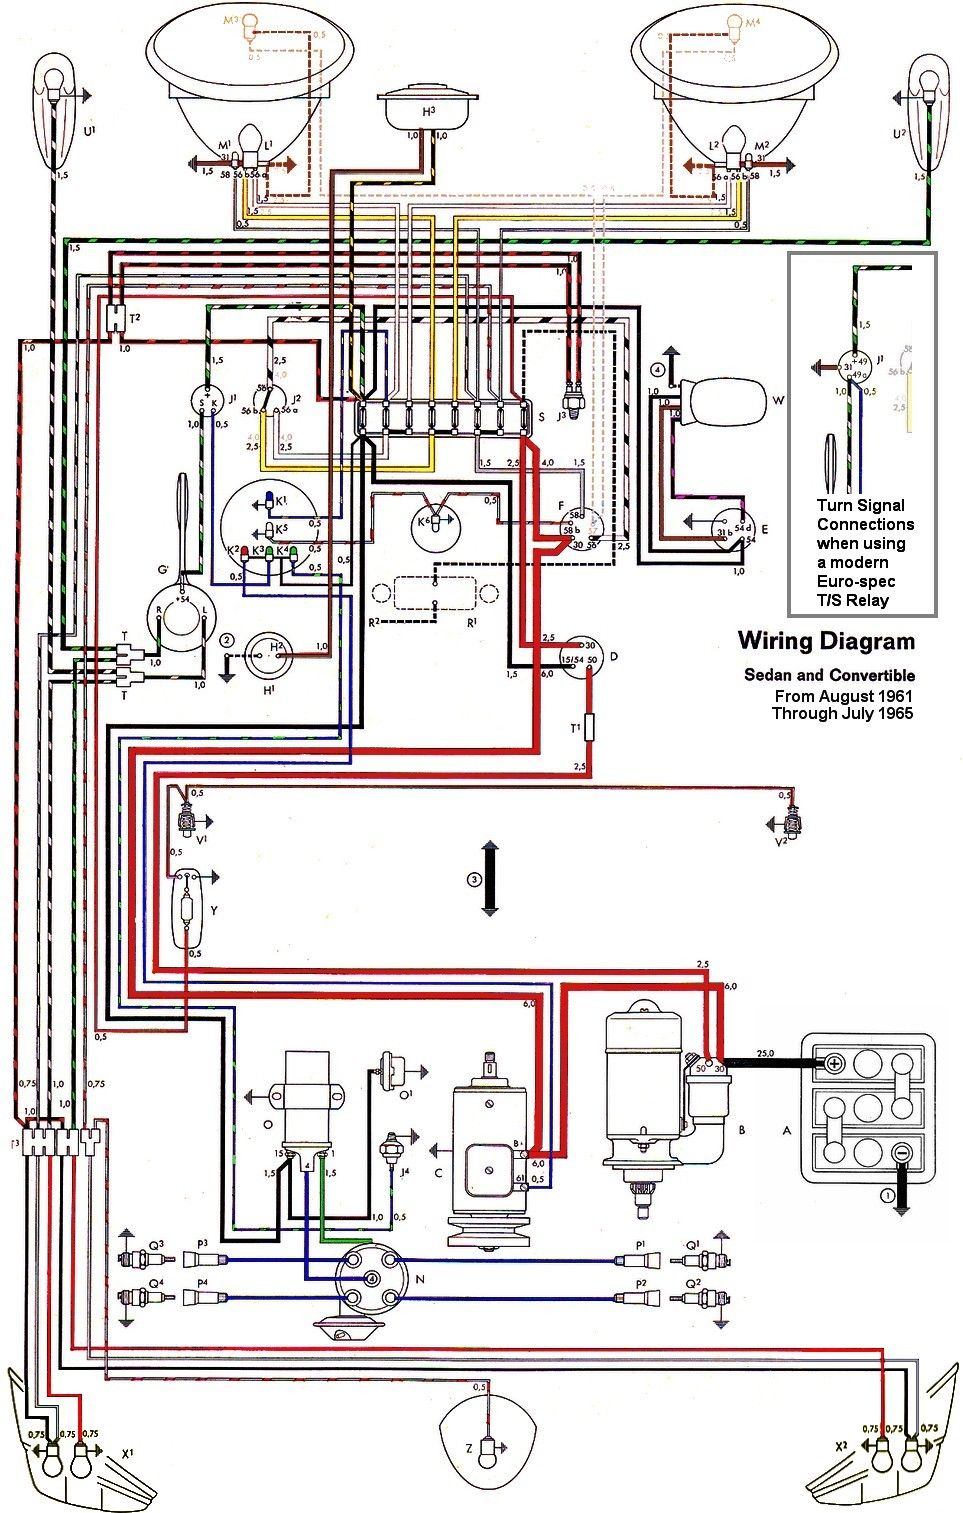 medium resolution of wiring diagram vw beetle sedan and convertible 1961 1965 vw wiring diagram vw beetle 1971 wiring